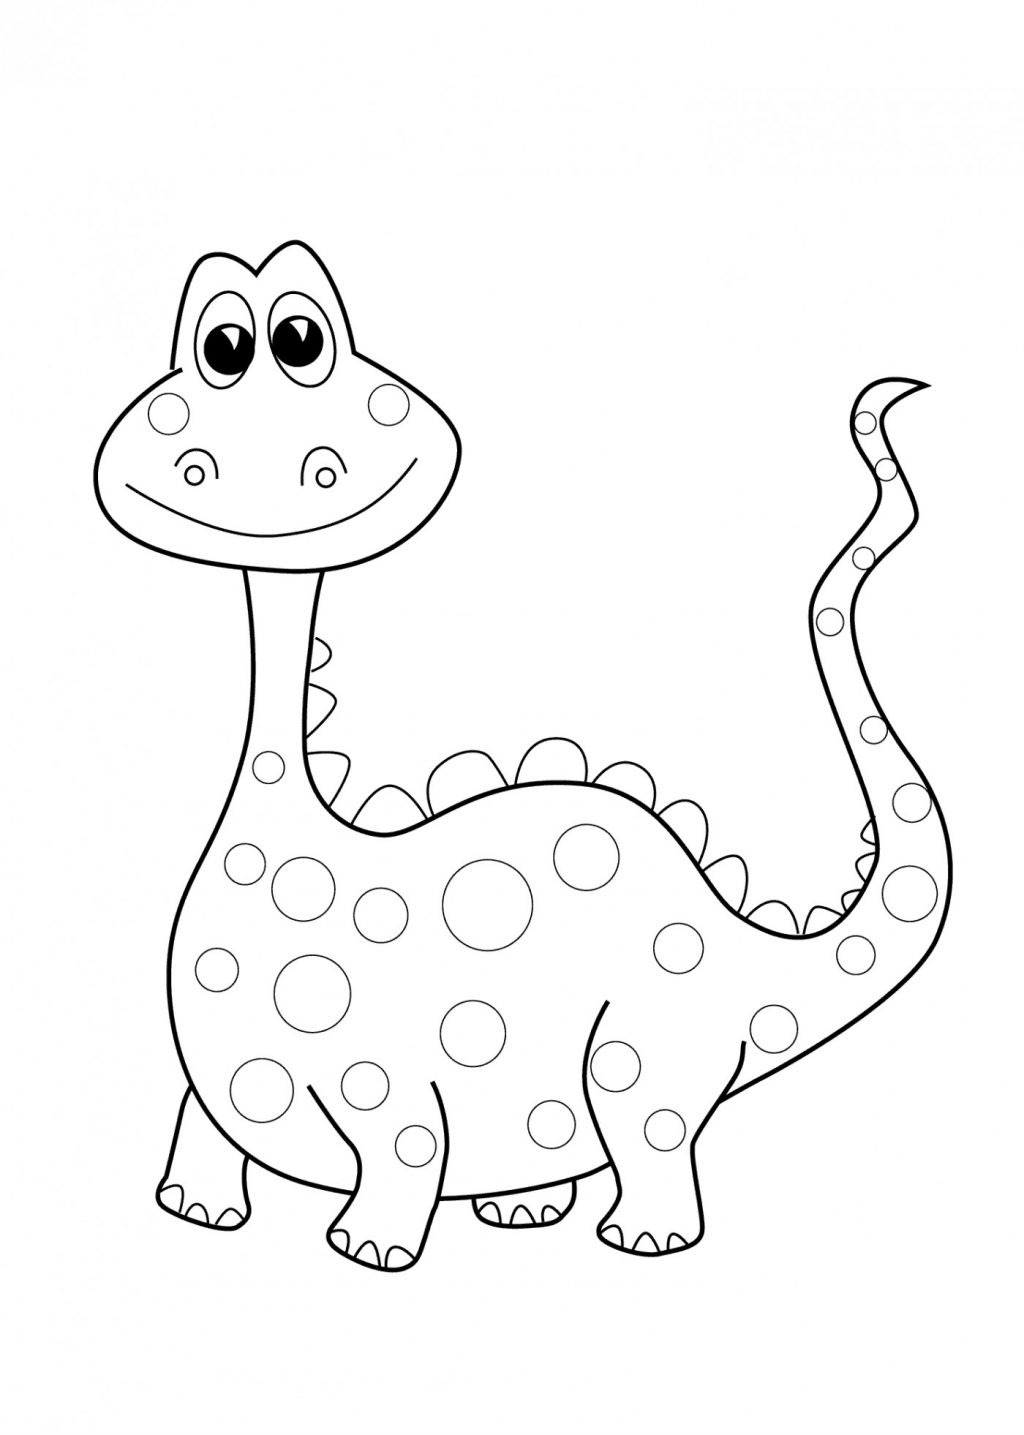 preschool coloring pages coloring page coloring page dinosaur pages preschool depetta free 1